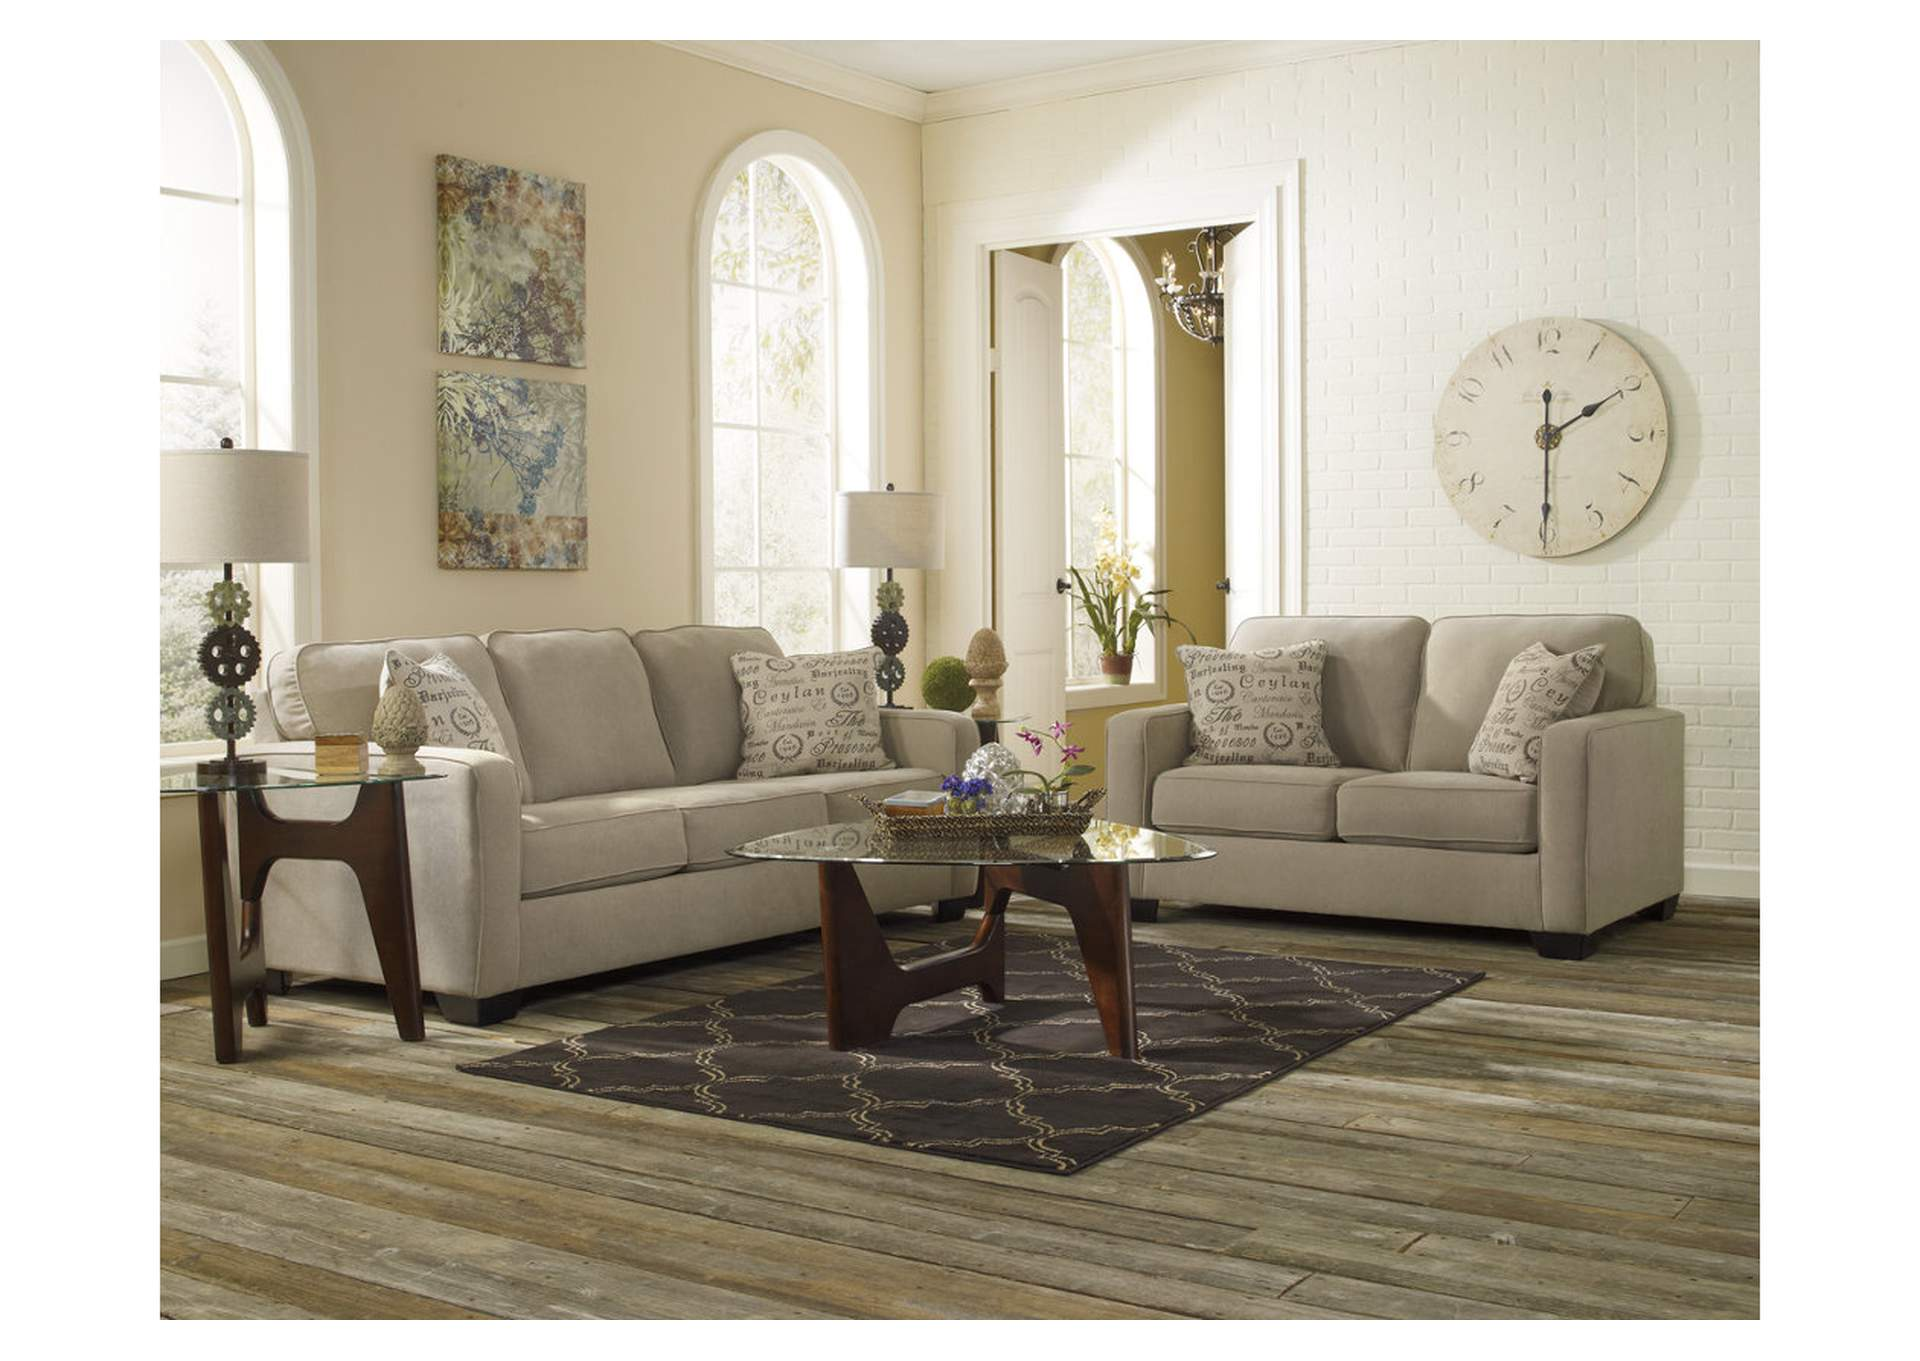 Alenya Quartz Sofa & Loveseat,ABF Signature Design by Ashley